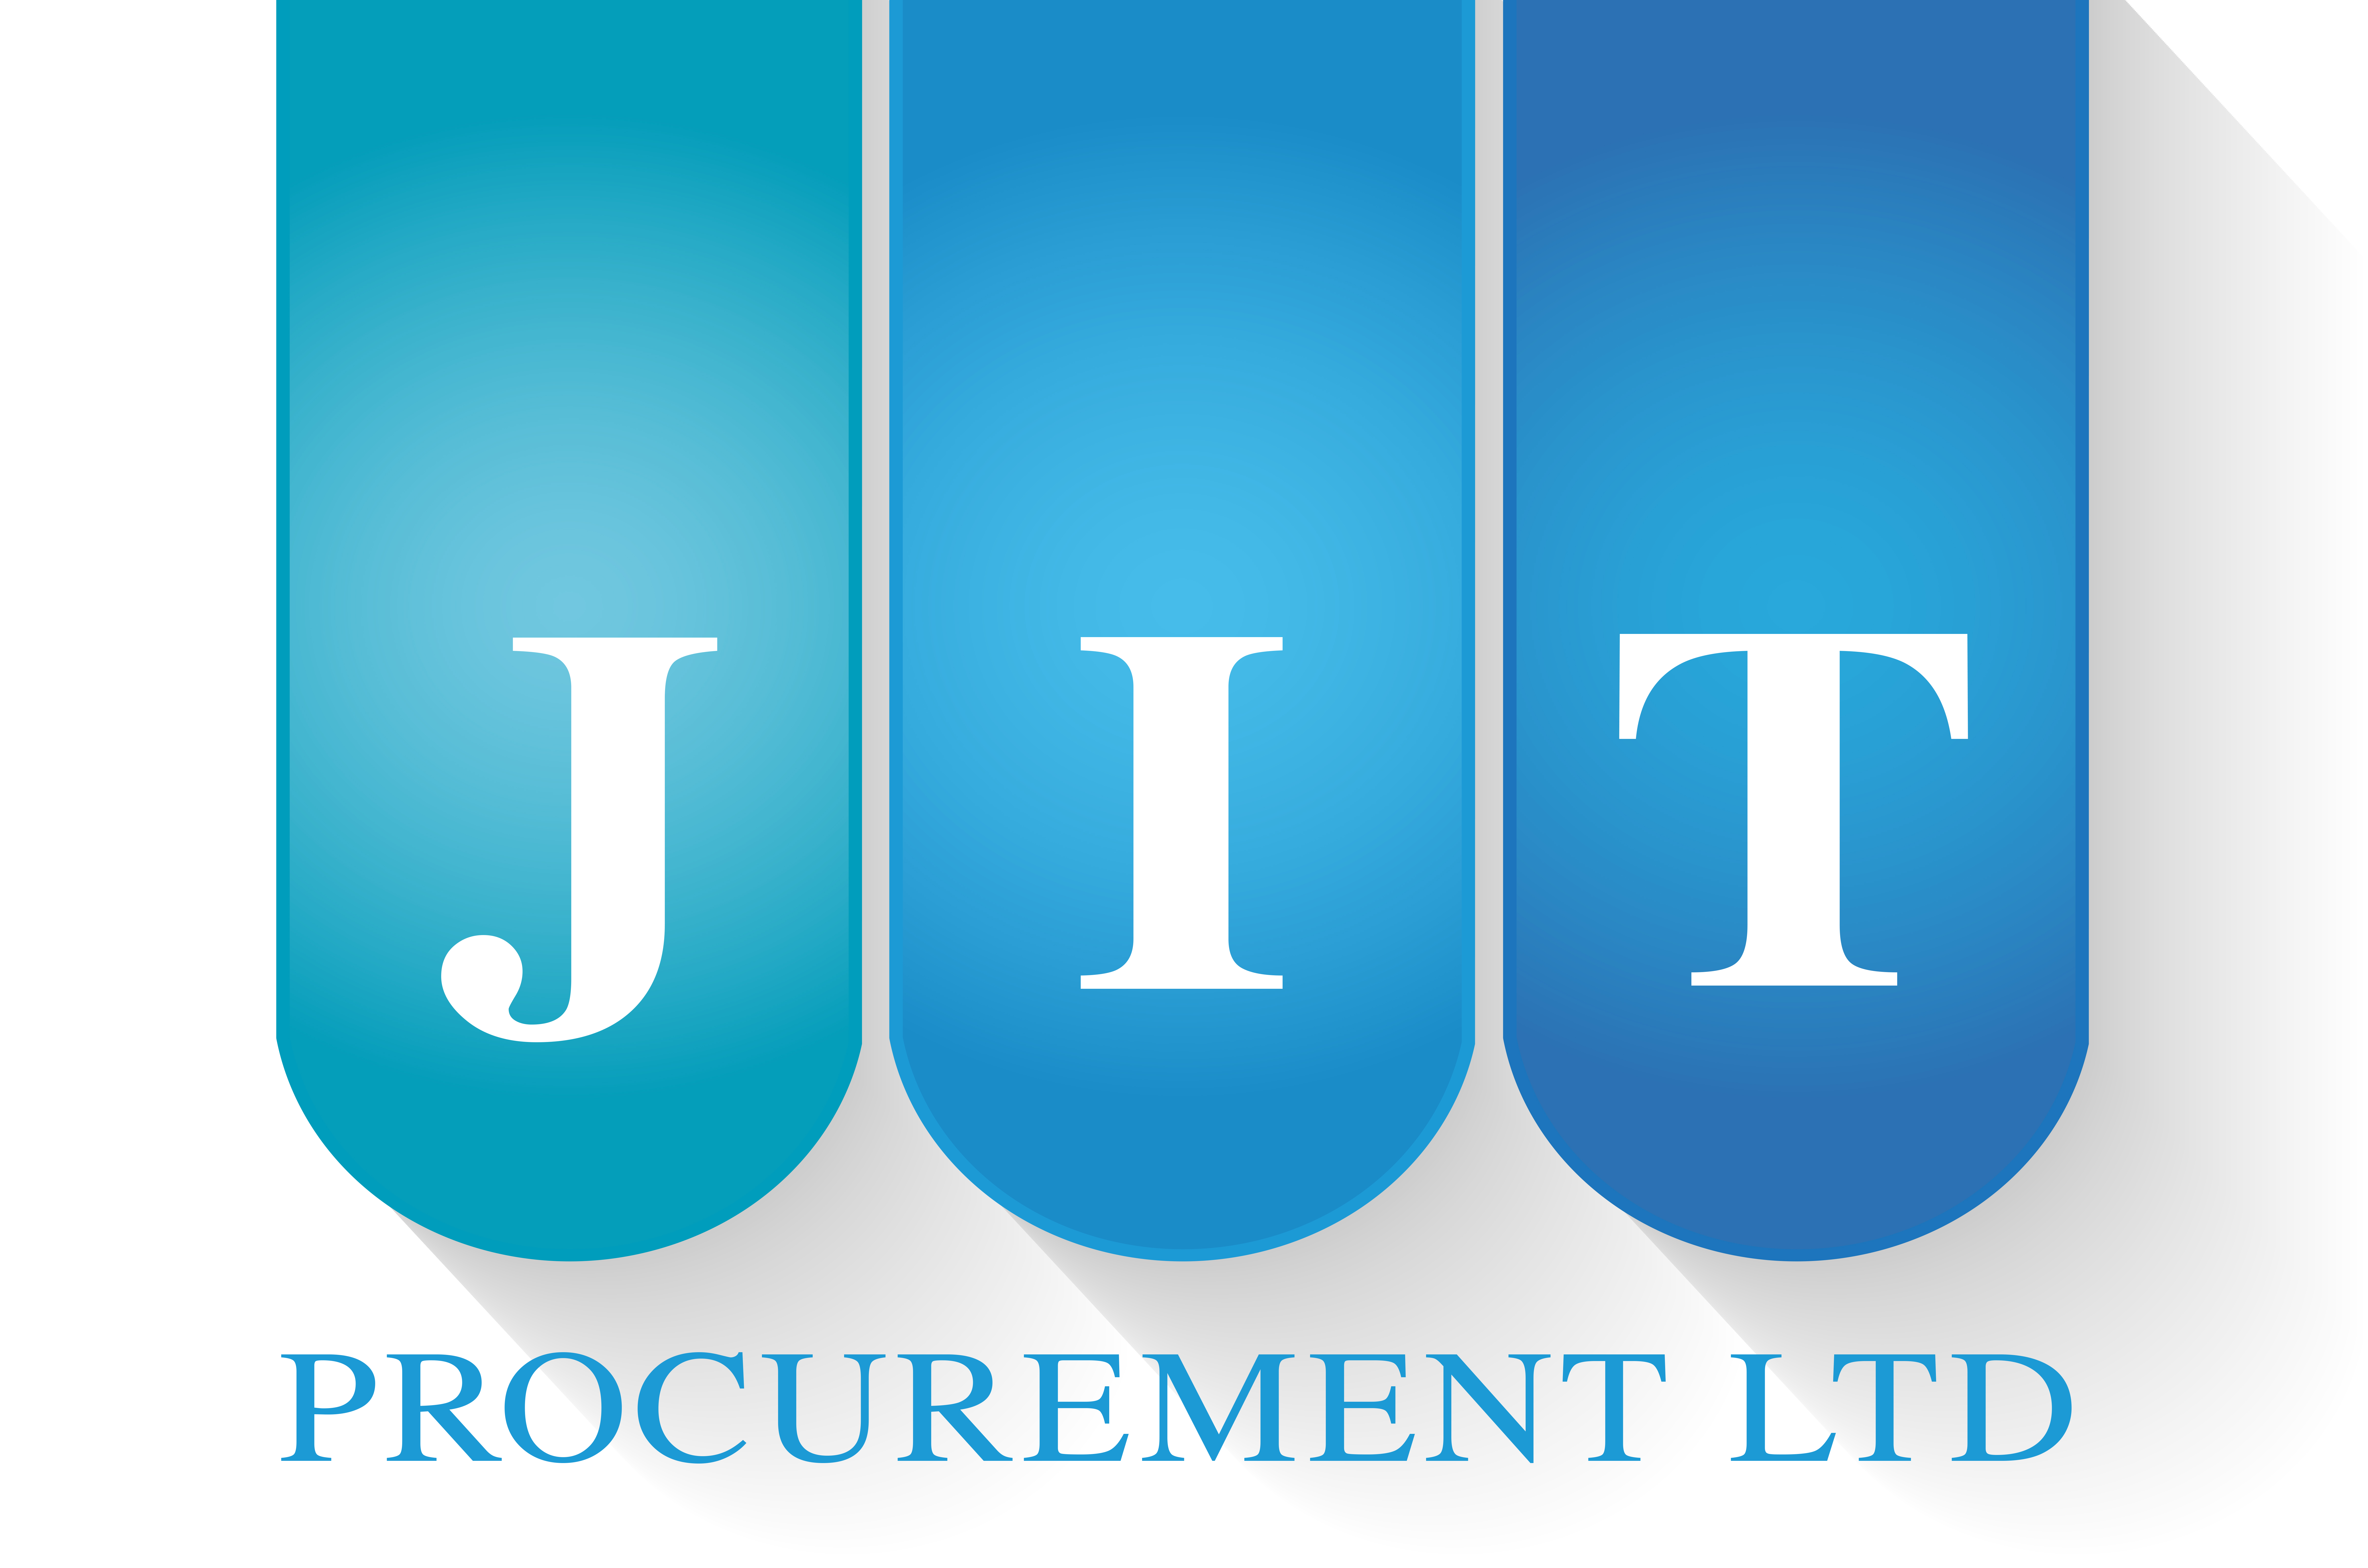 JIT Procurement Limited